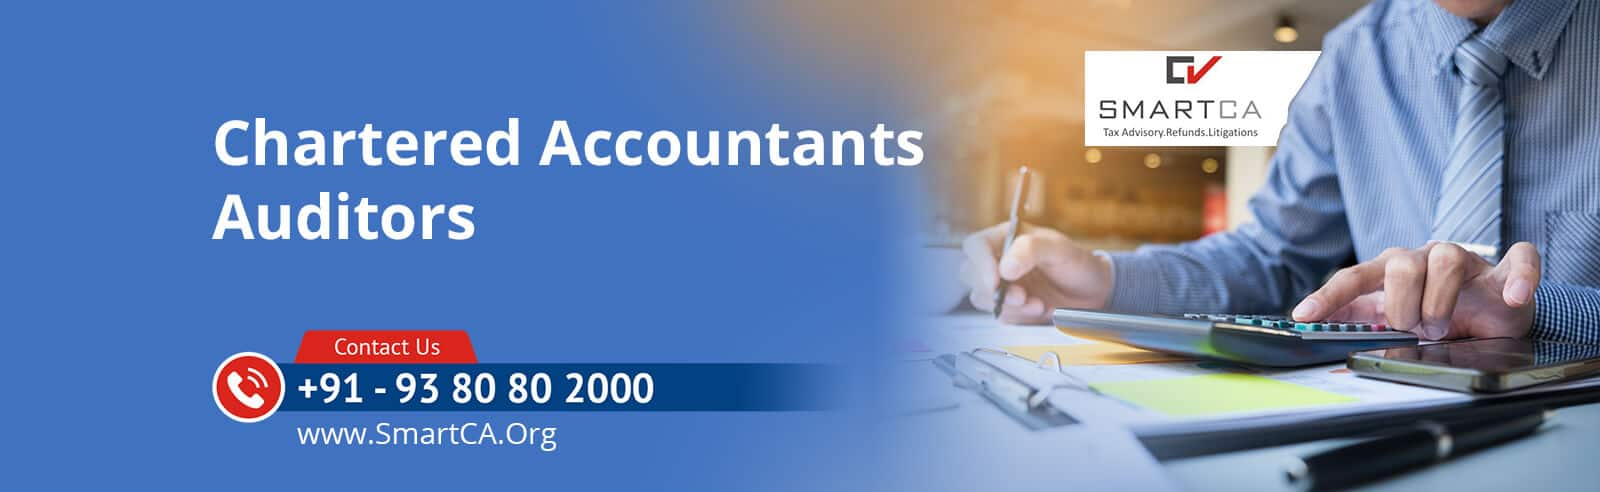 Auditors in Chennai Kolathur